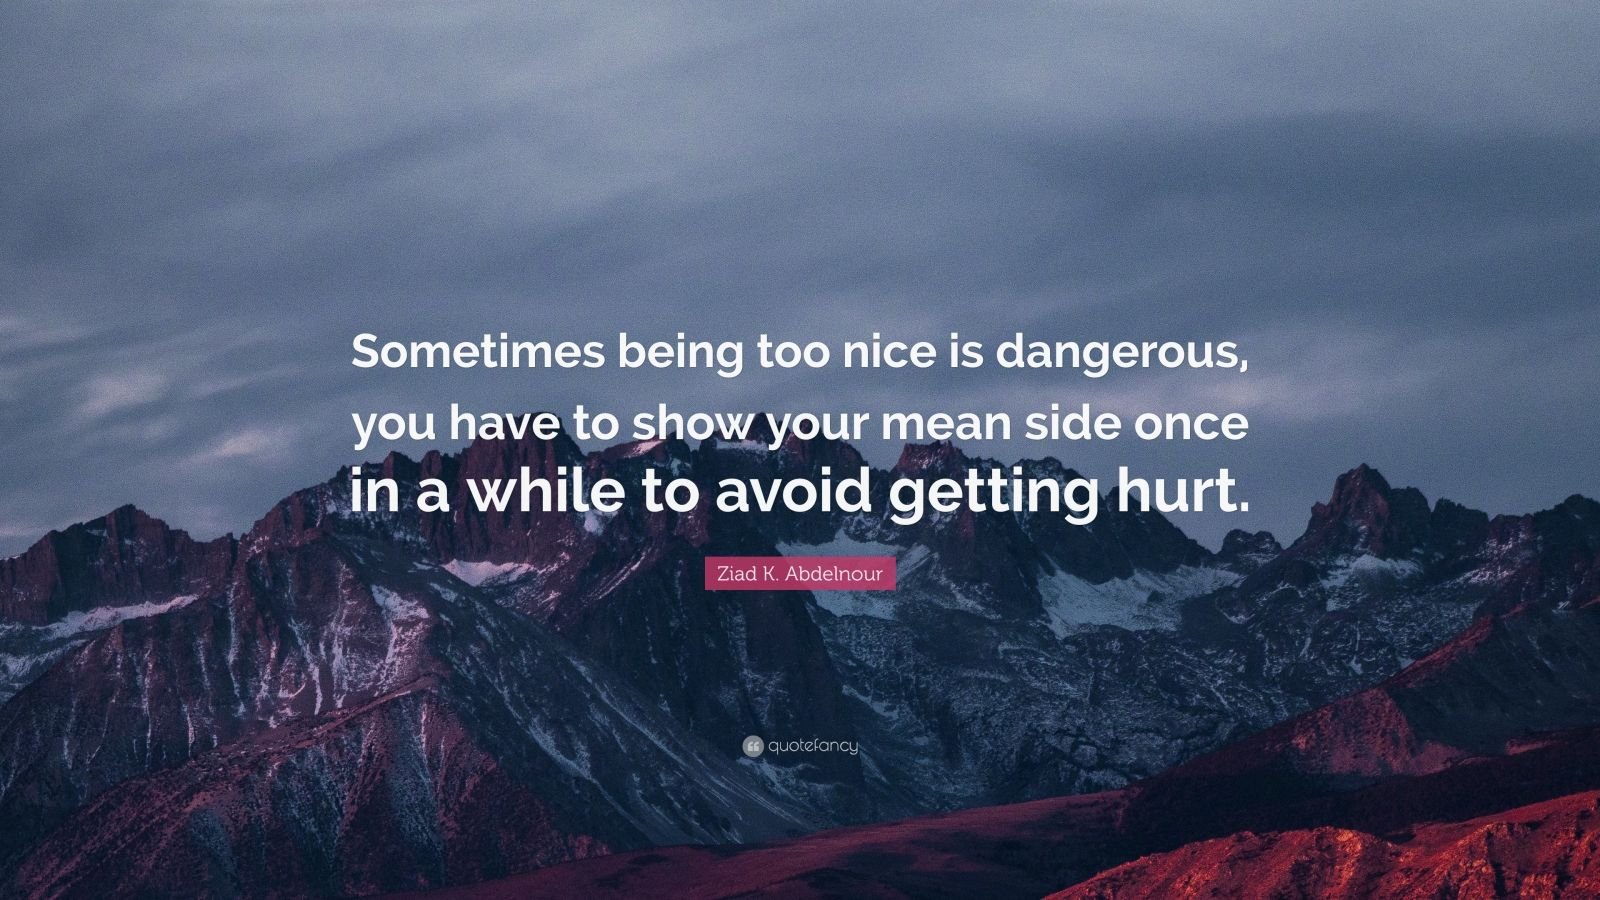 """Ziad K. Abdelnour Quote: """"Sometimes being too nice is dangerous, you have to show your mean side once in a while to avoid getting hurt."""""""